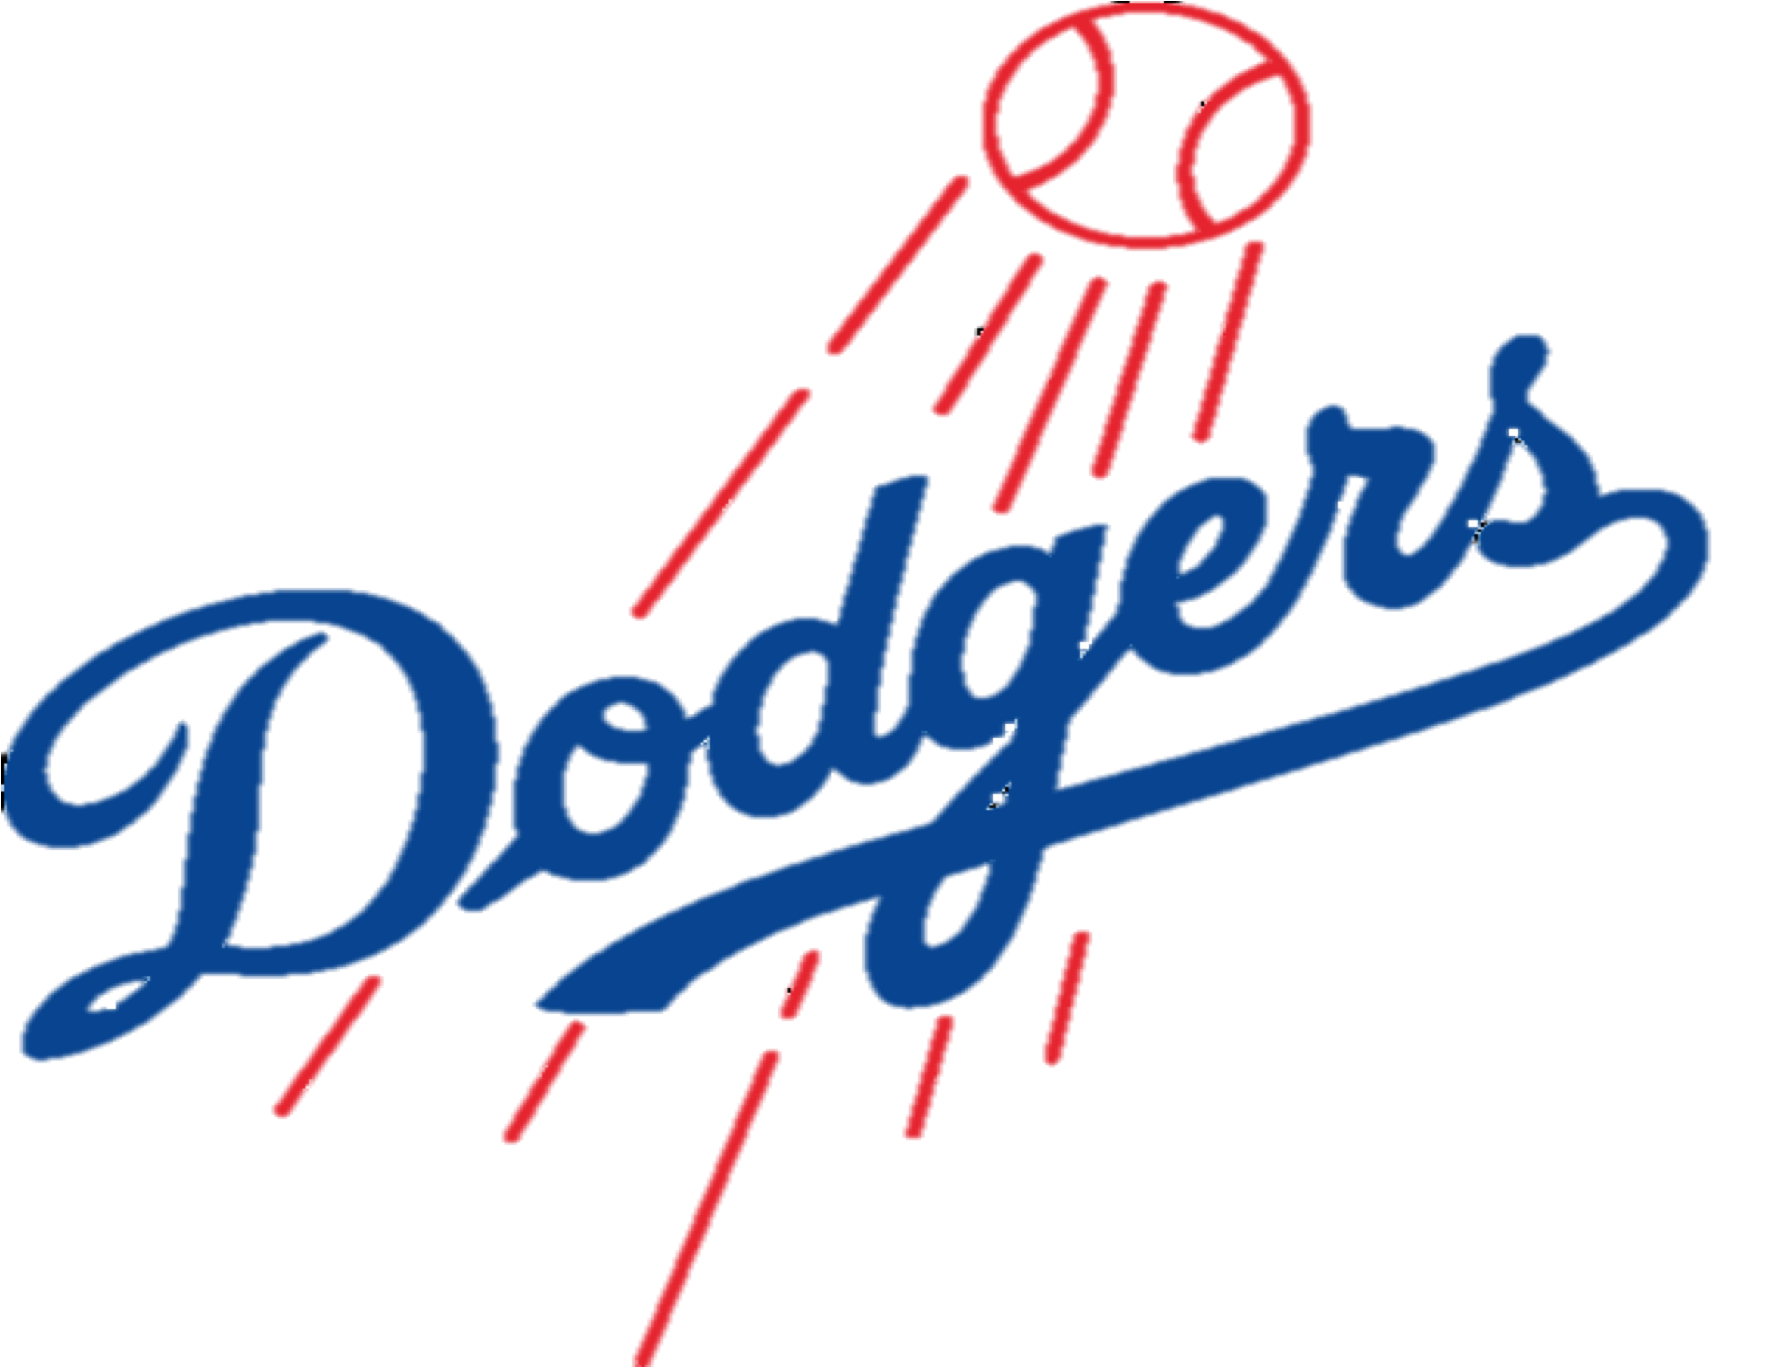 Dodgers vector drawing. Los angeles logos png vector transparent